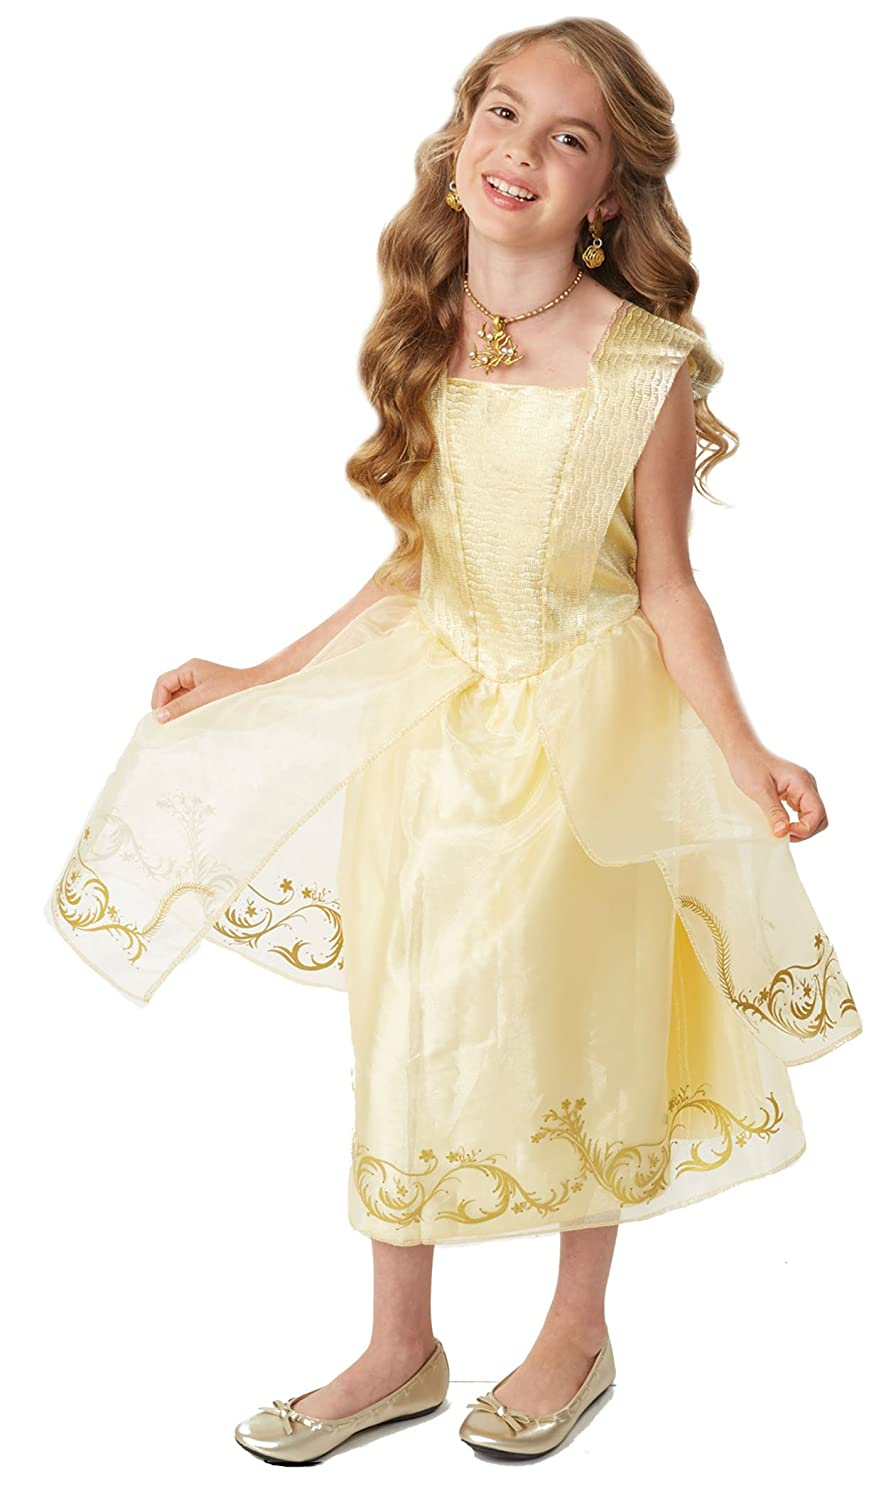 Disney Beauty and The Beast Live Action Belles Ball Gown Costume Dress Kids Girls